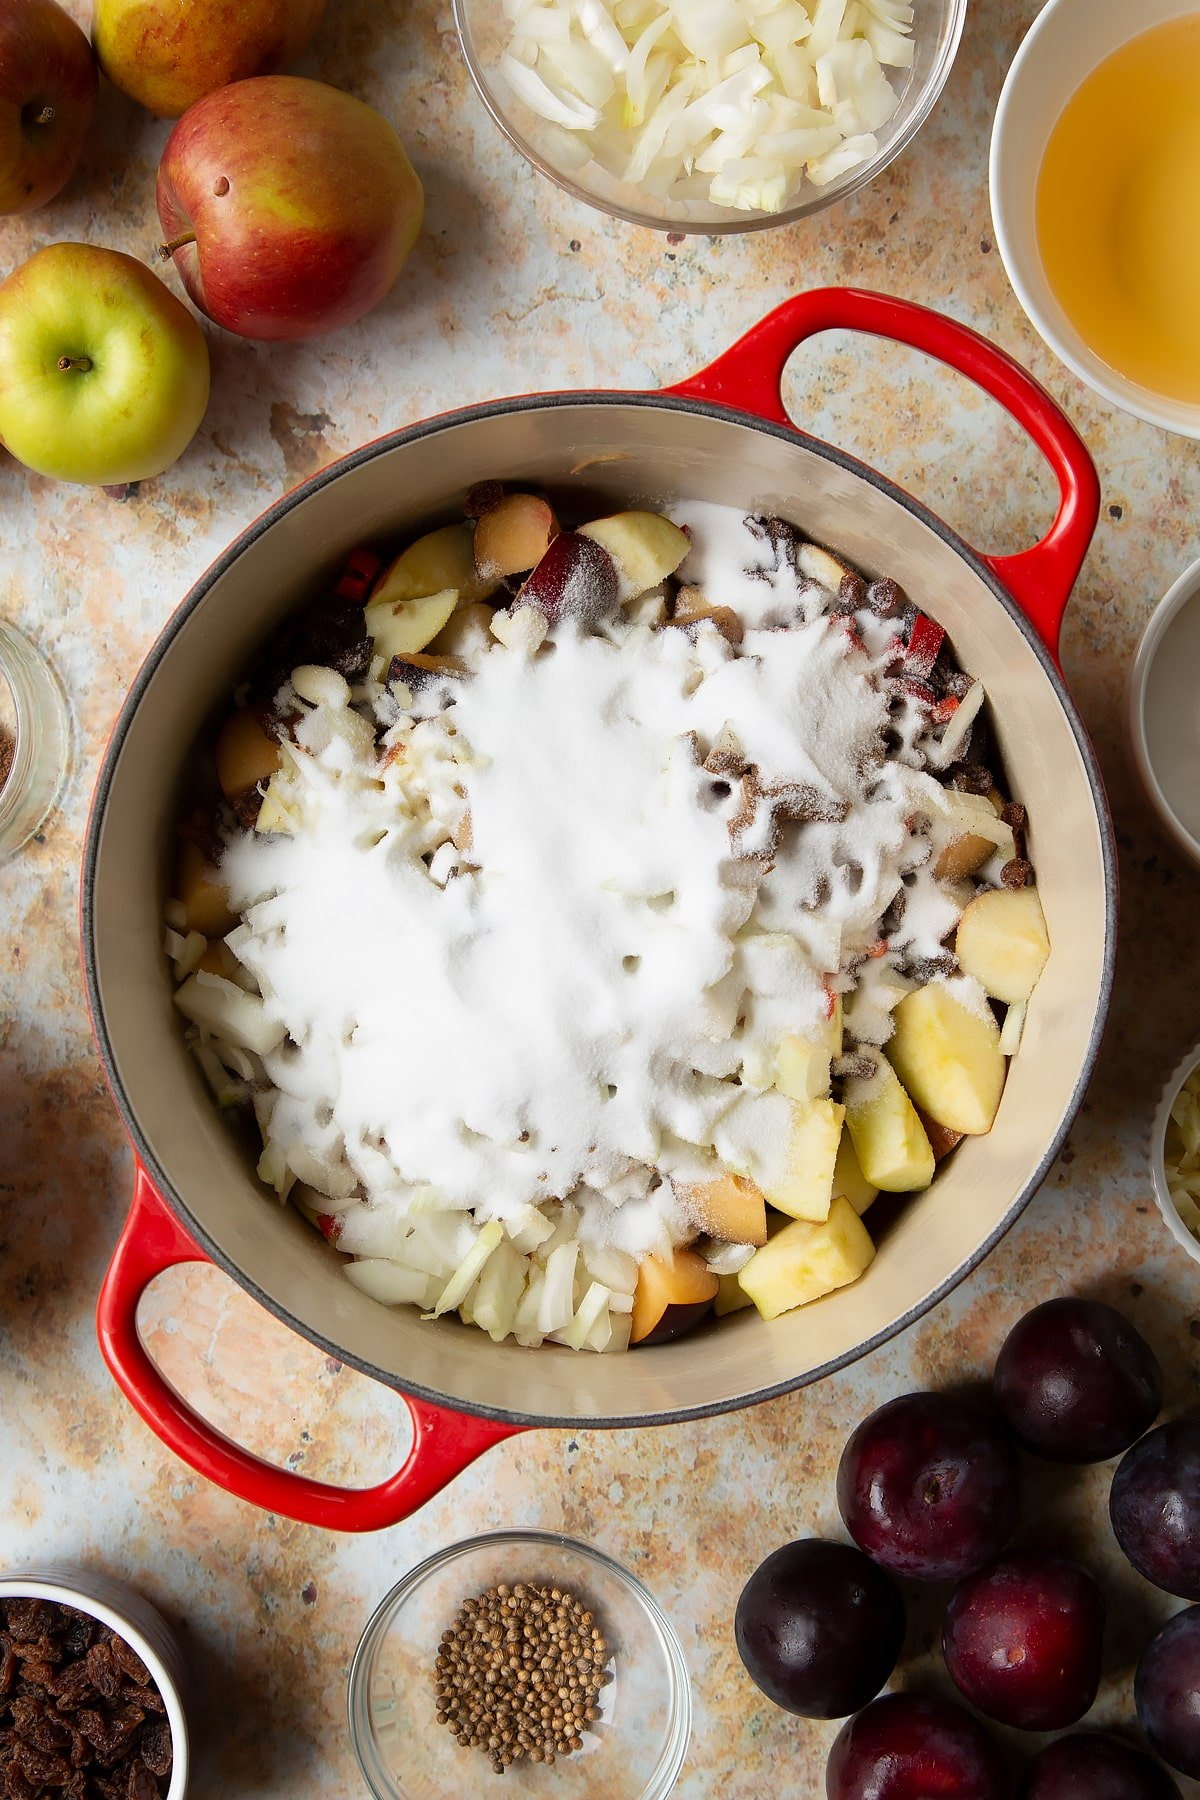 Chopped plums, apples, raisins, chilli, onion, garlic and sugar in a large pan. Ingredients to make a fruit chutney recipe surround the pan.